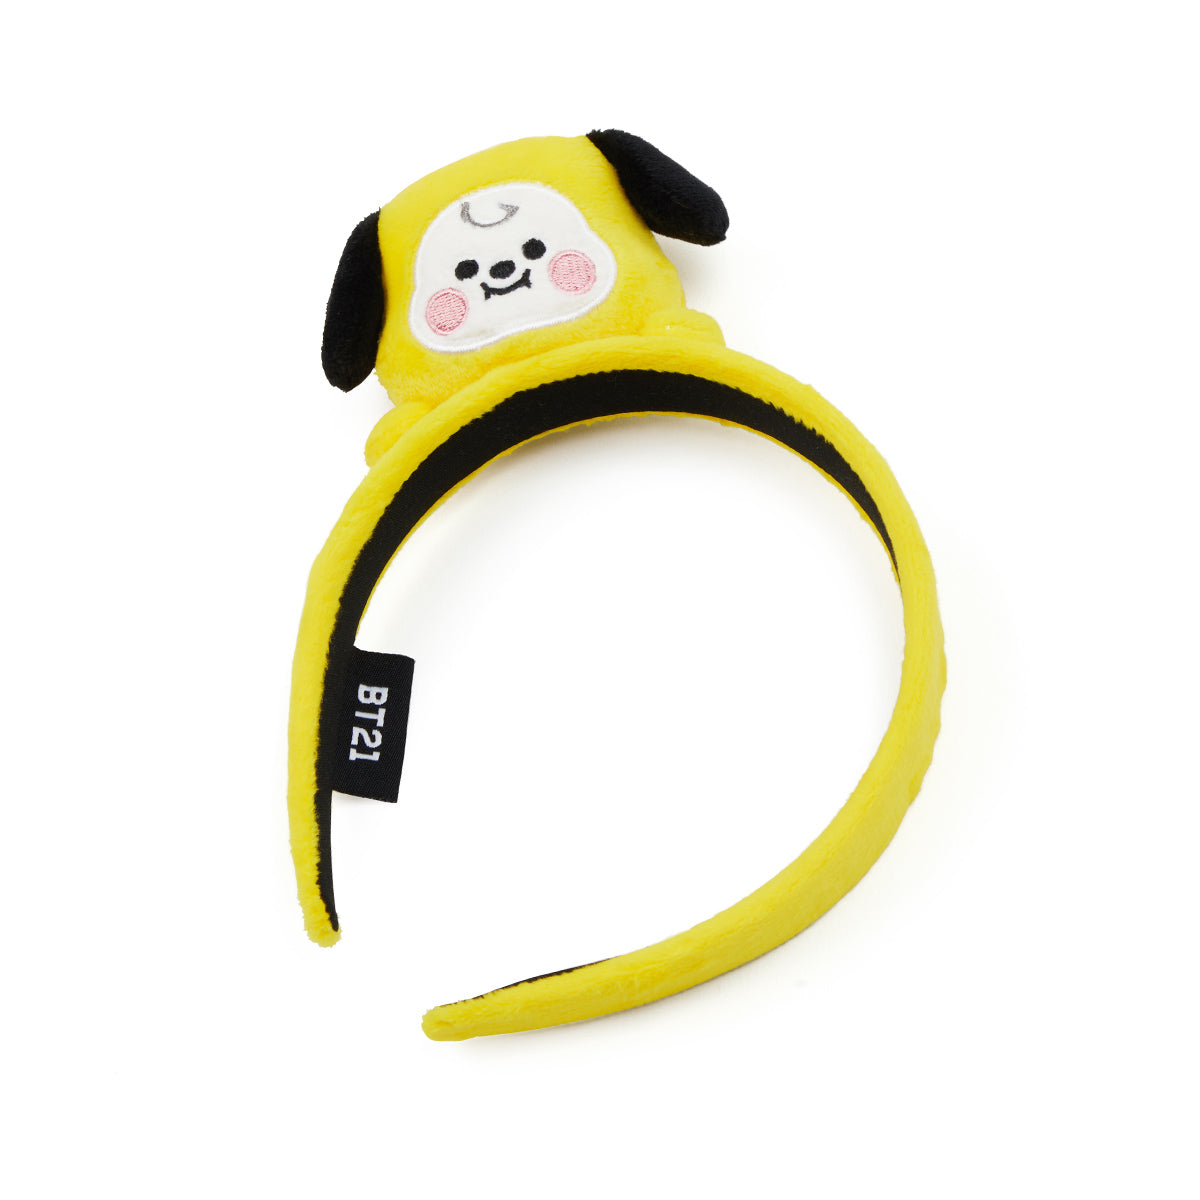 Bt21 Chimmy Baby Hairband Line Friends Inc 8,354 likes · 127 talking about this. bt21 chimmy baby hairband